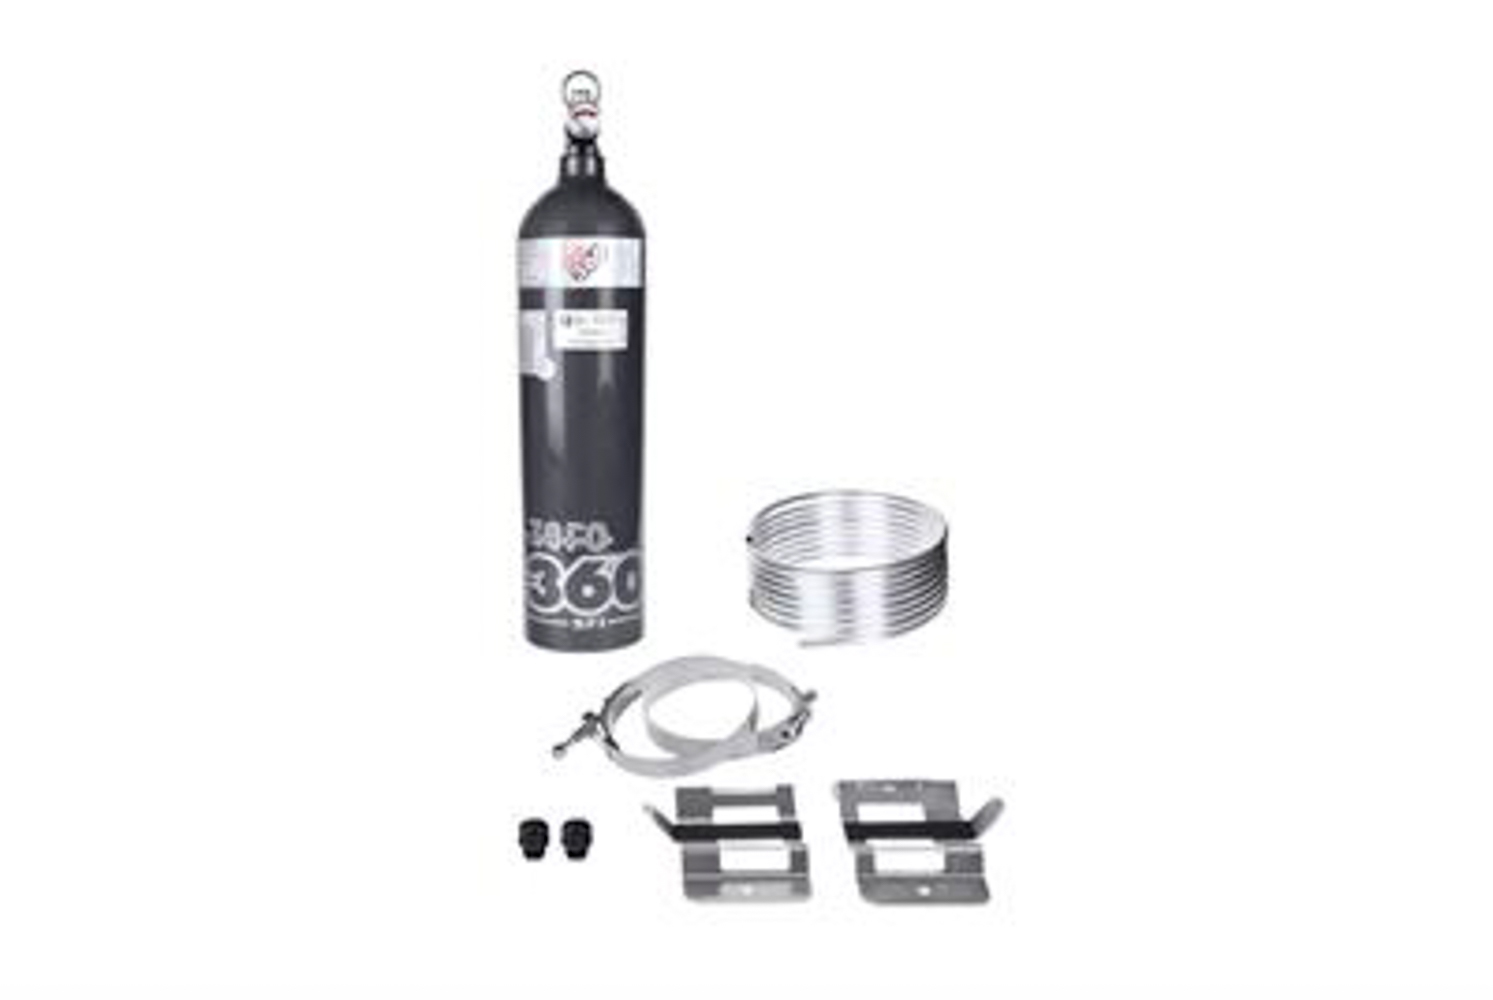 Lifeline USA 103-101-004 Fire Suppression System, Zero 360, Novec 1230, 5.0 lb Bottle, Steel Tubing, Fittings / Hose / Mount, Kit